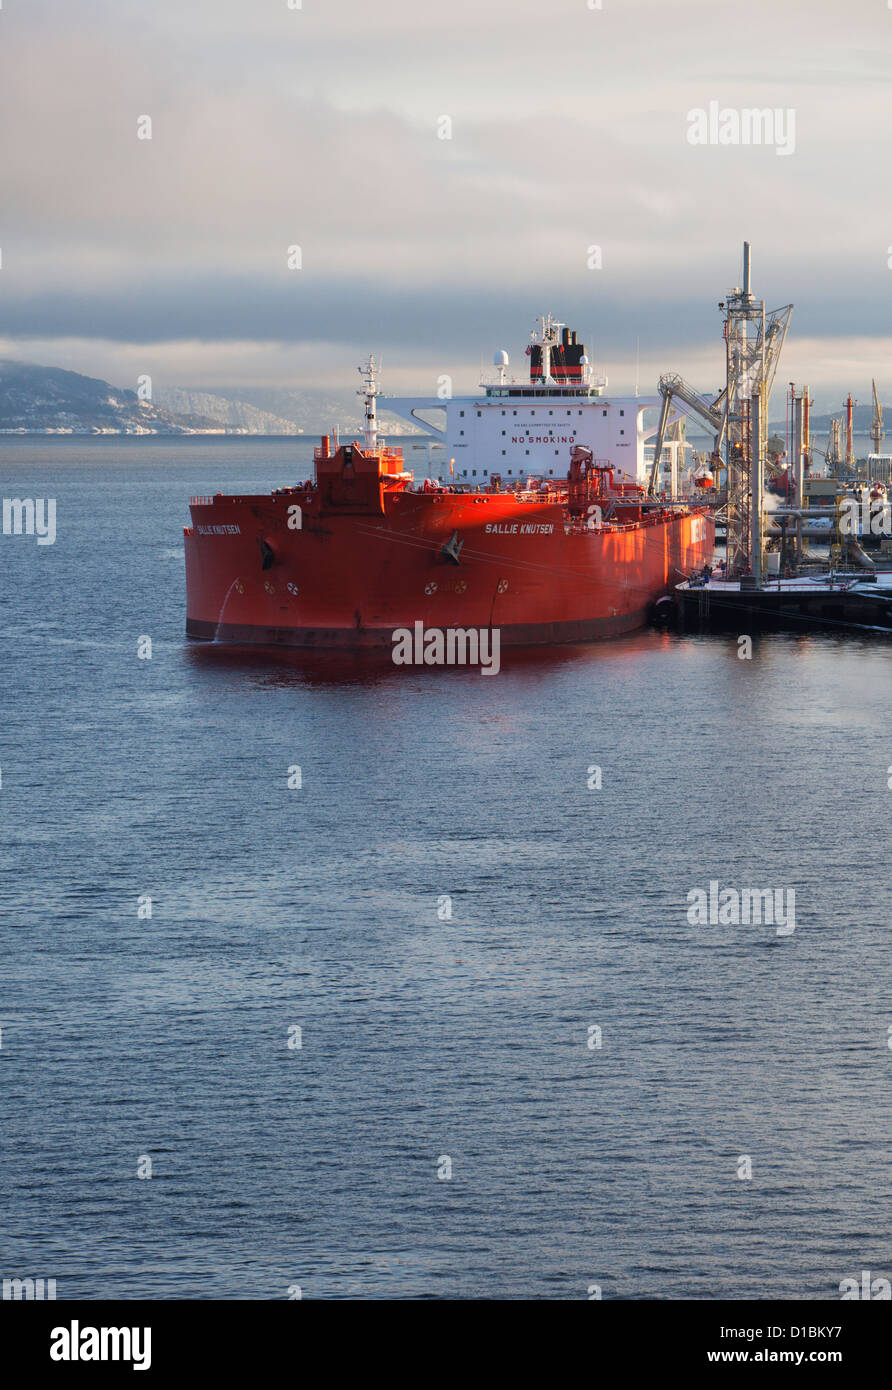 Crude oil tanker loading or discharging at Mongstad refinery, Norway. - Stock Image